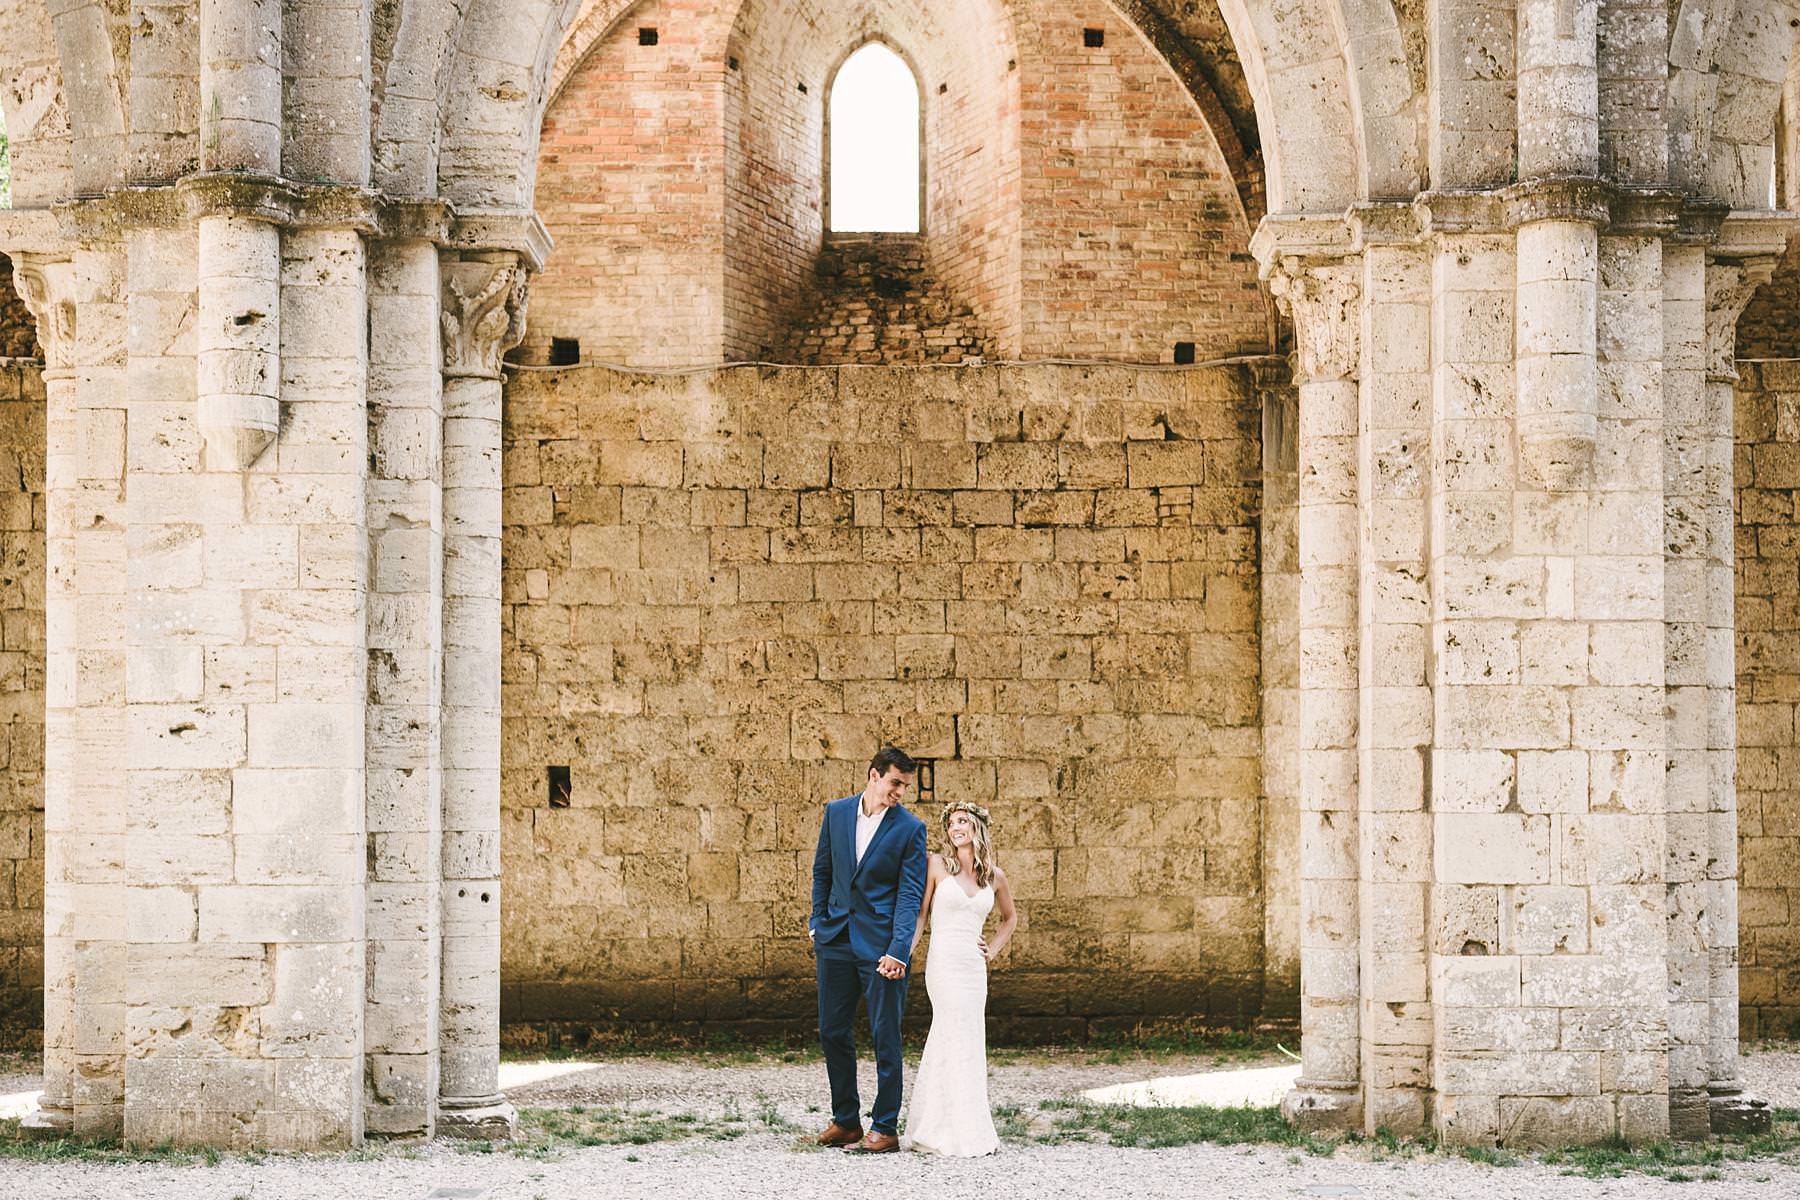 Lovely bride and groom portraiture session with colours, light, architecture and love gestures at Roofless Abbey of San Galgano. Italian civil destination wedding in Tuscany